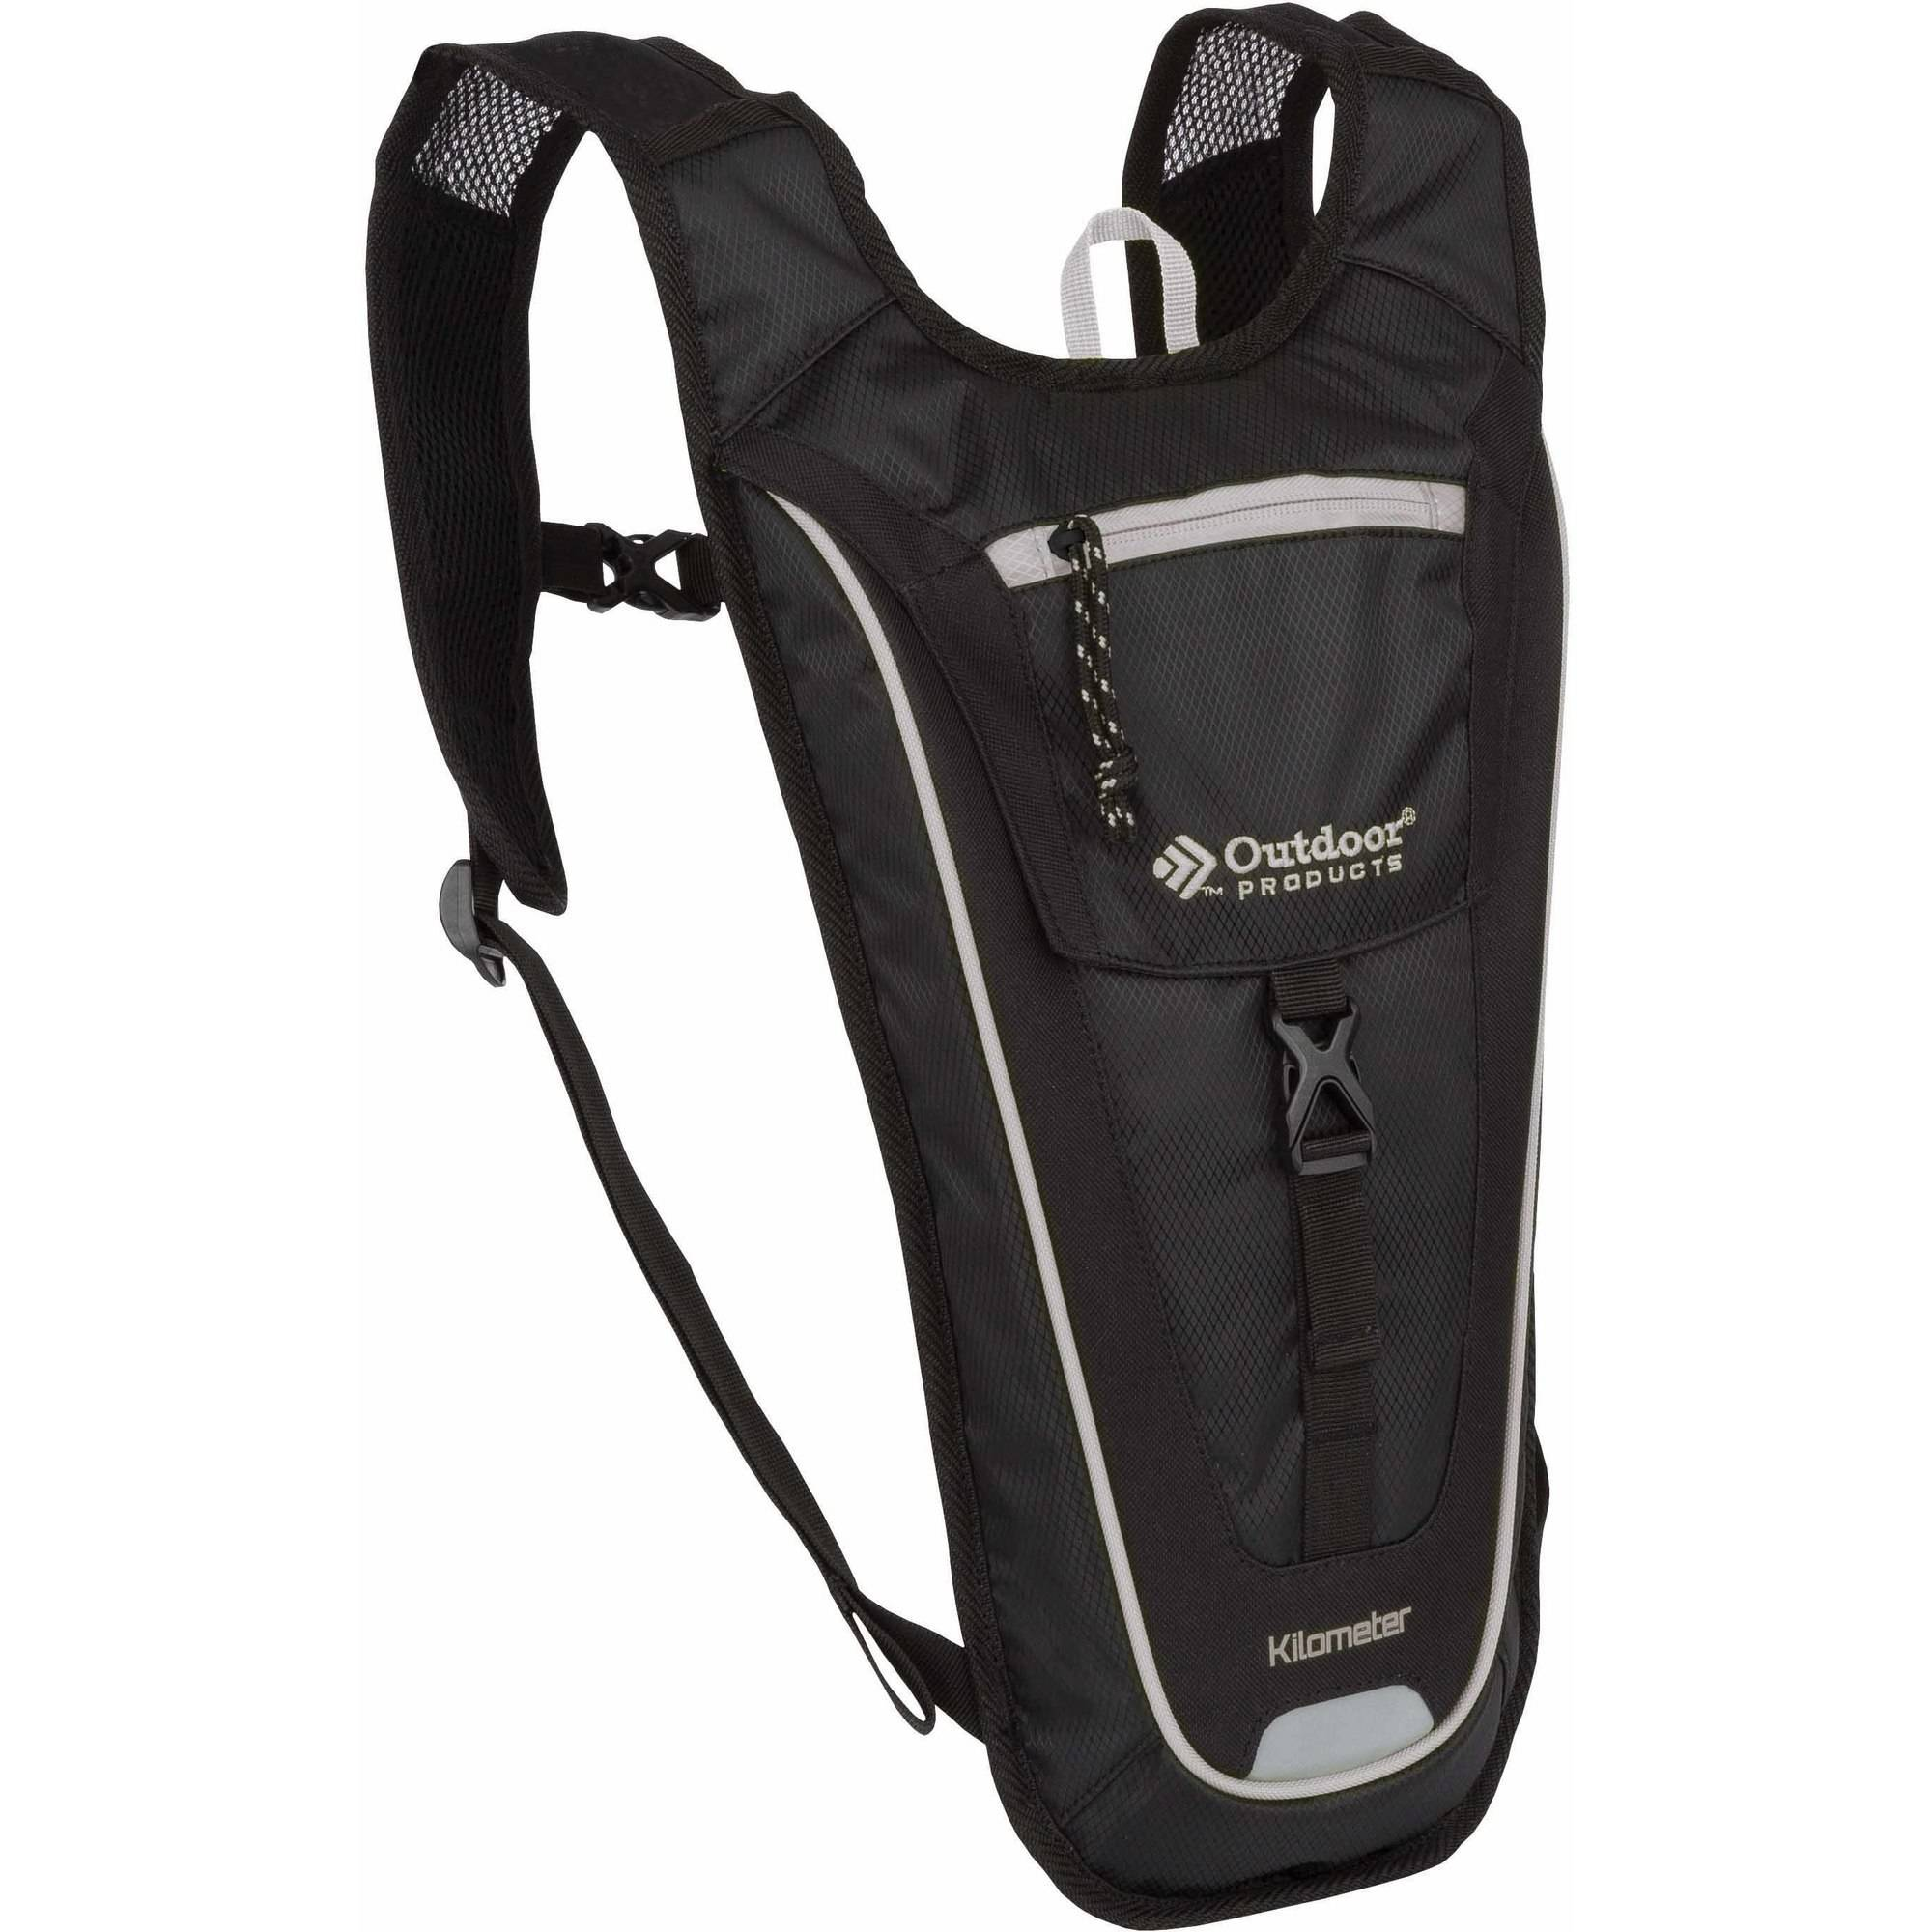 Outdoor Products Kilometer Hydration Pack, Assorted